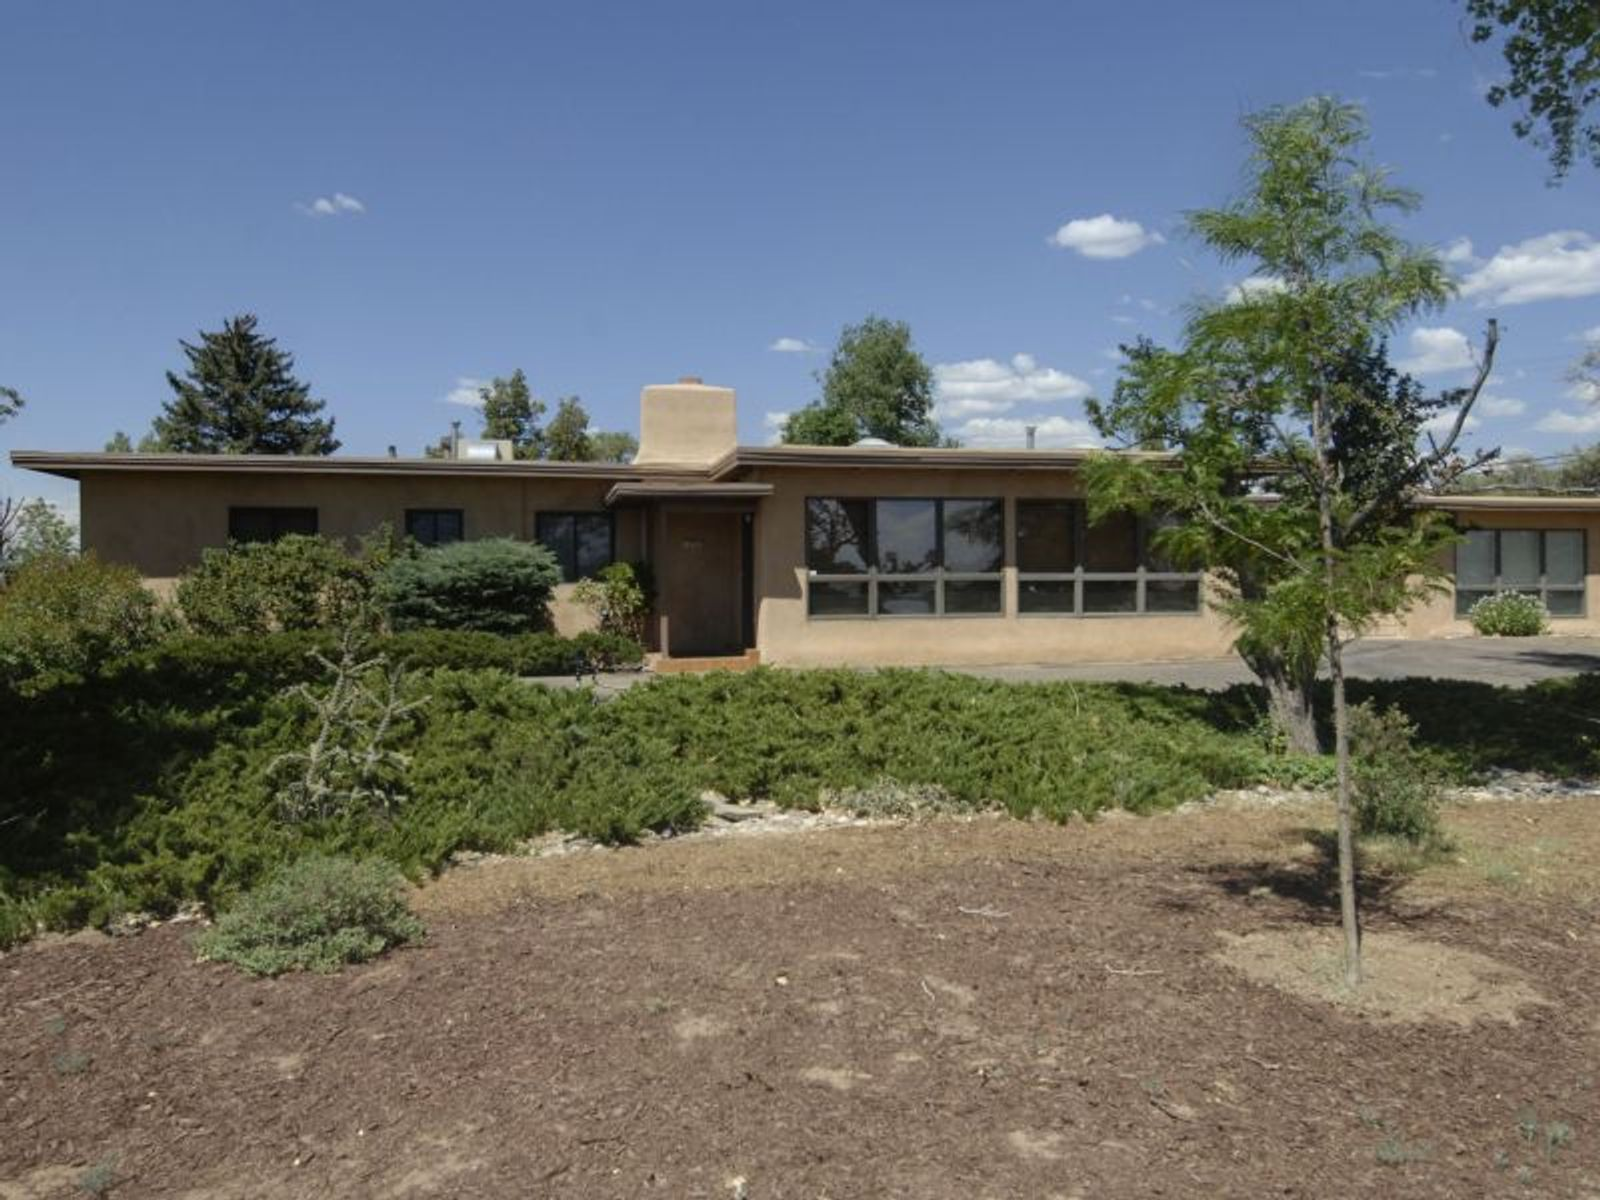 123  W San Mateo, Santa Fe NM Single Family Home - Santa Fe Real Estate